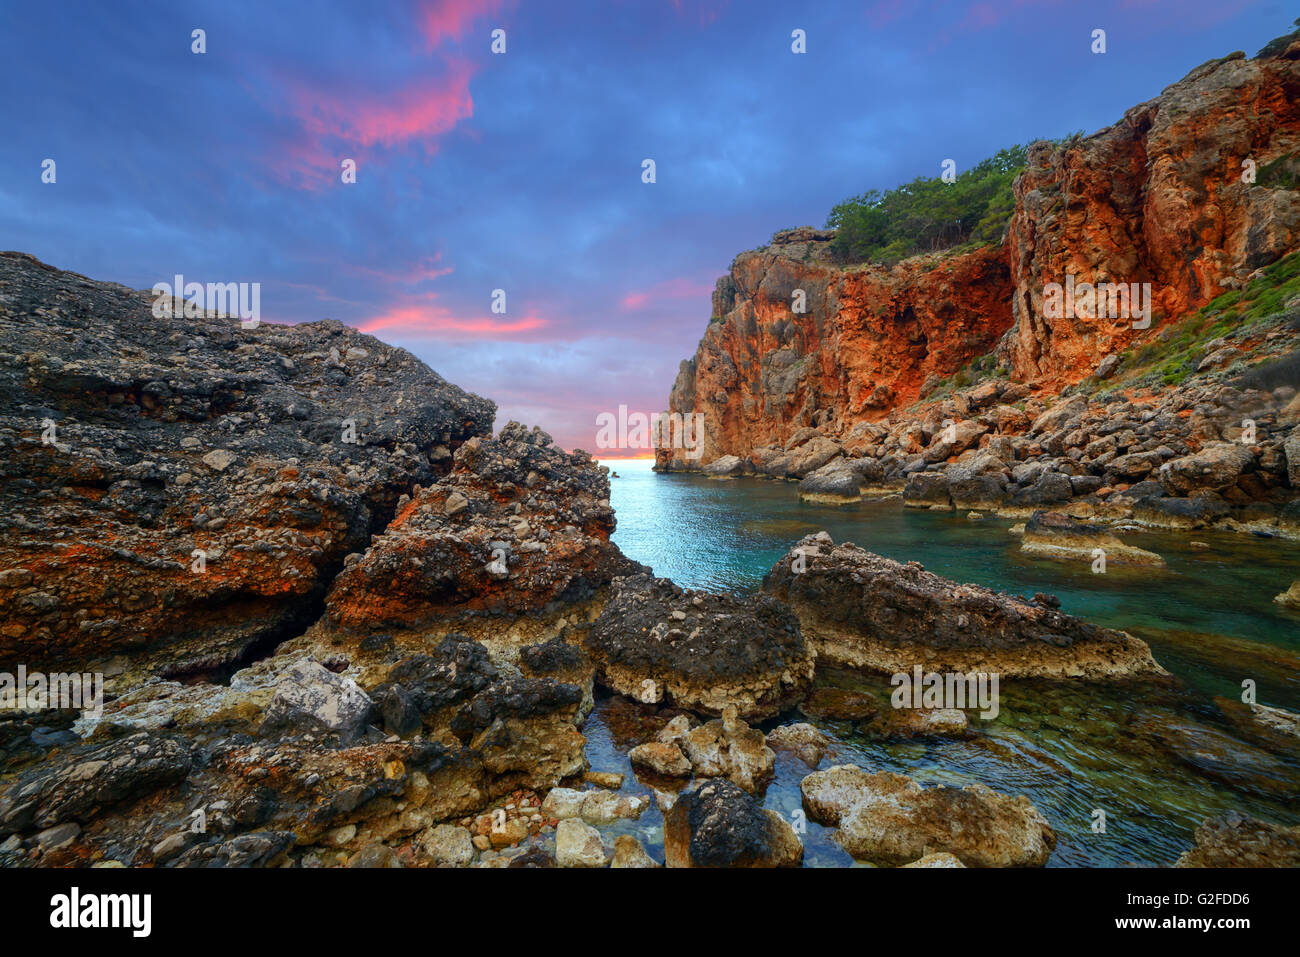 Amazing Mediterranean seascape in Turkey - Stock Image